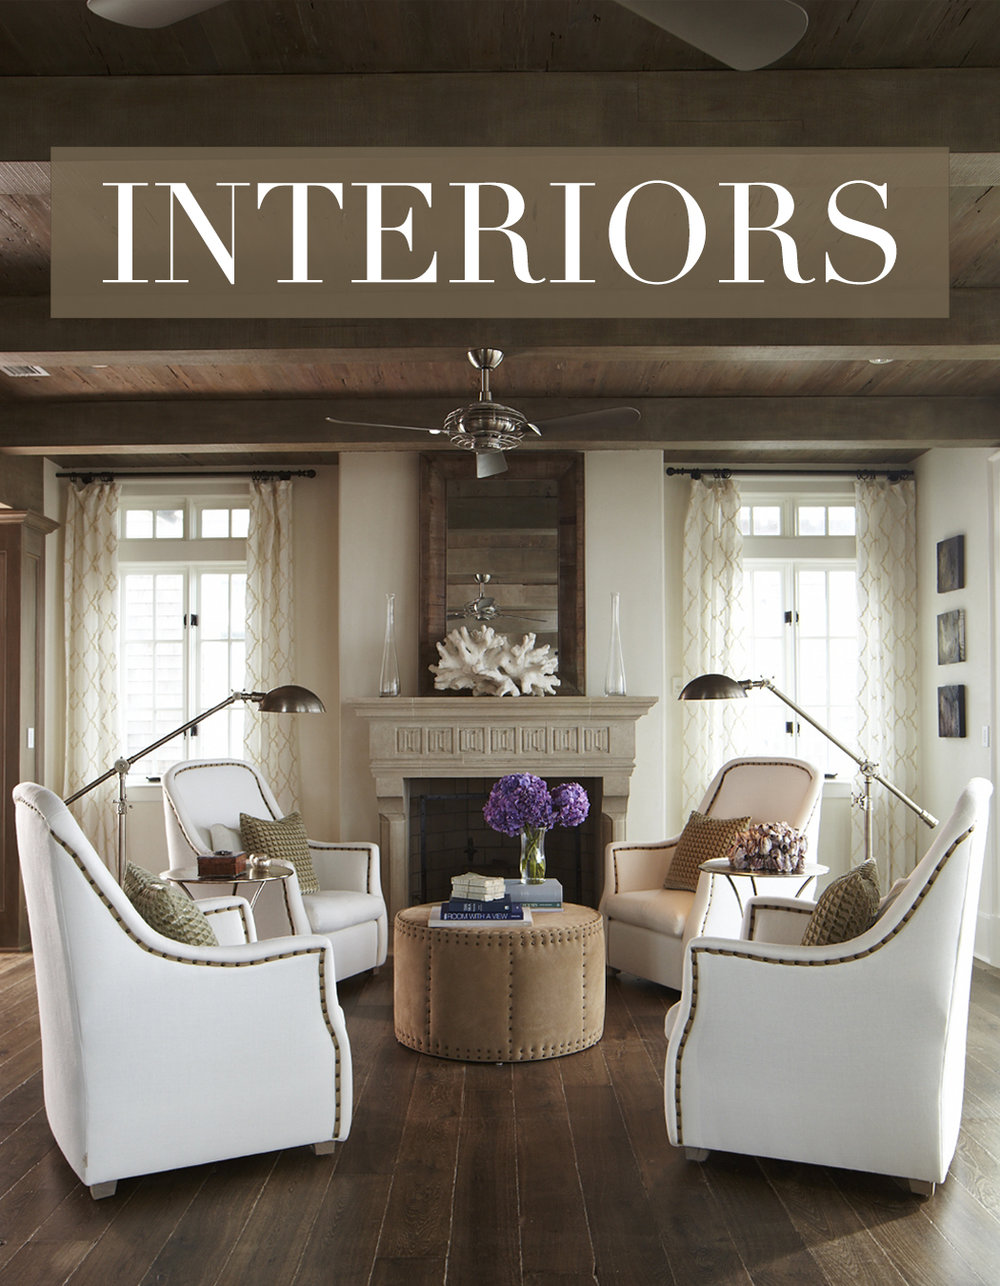 interiors home web.jpg